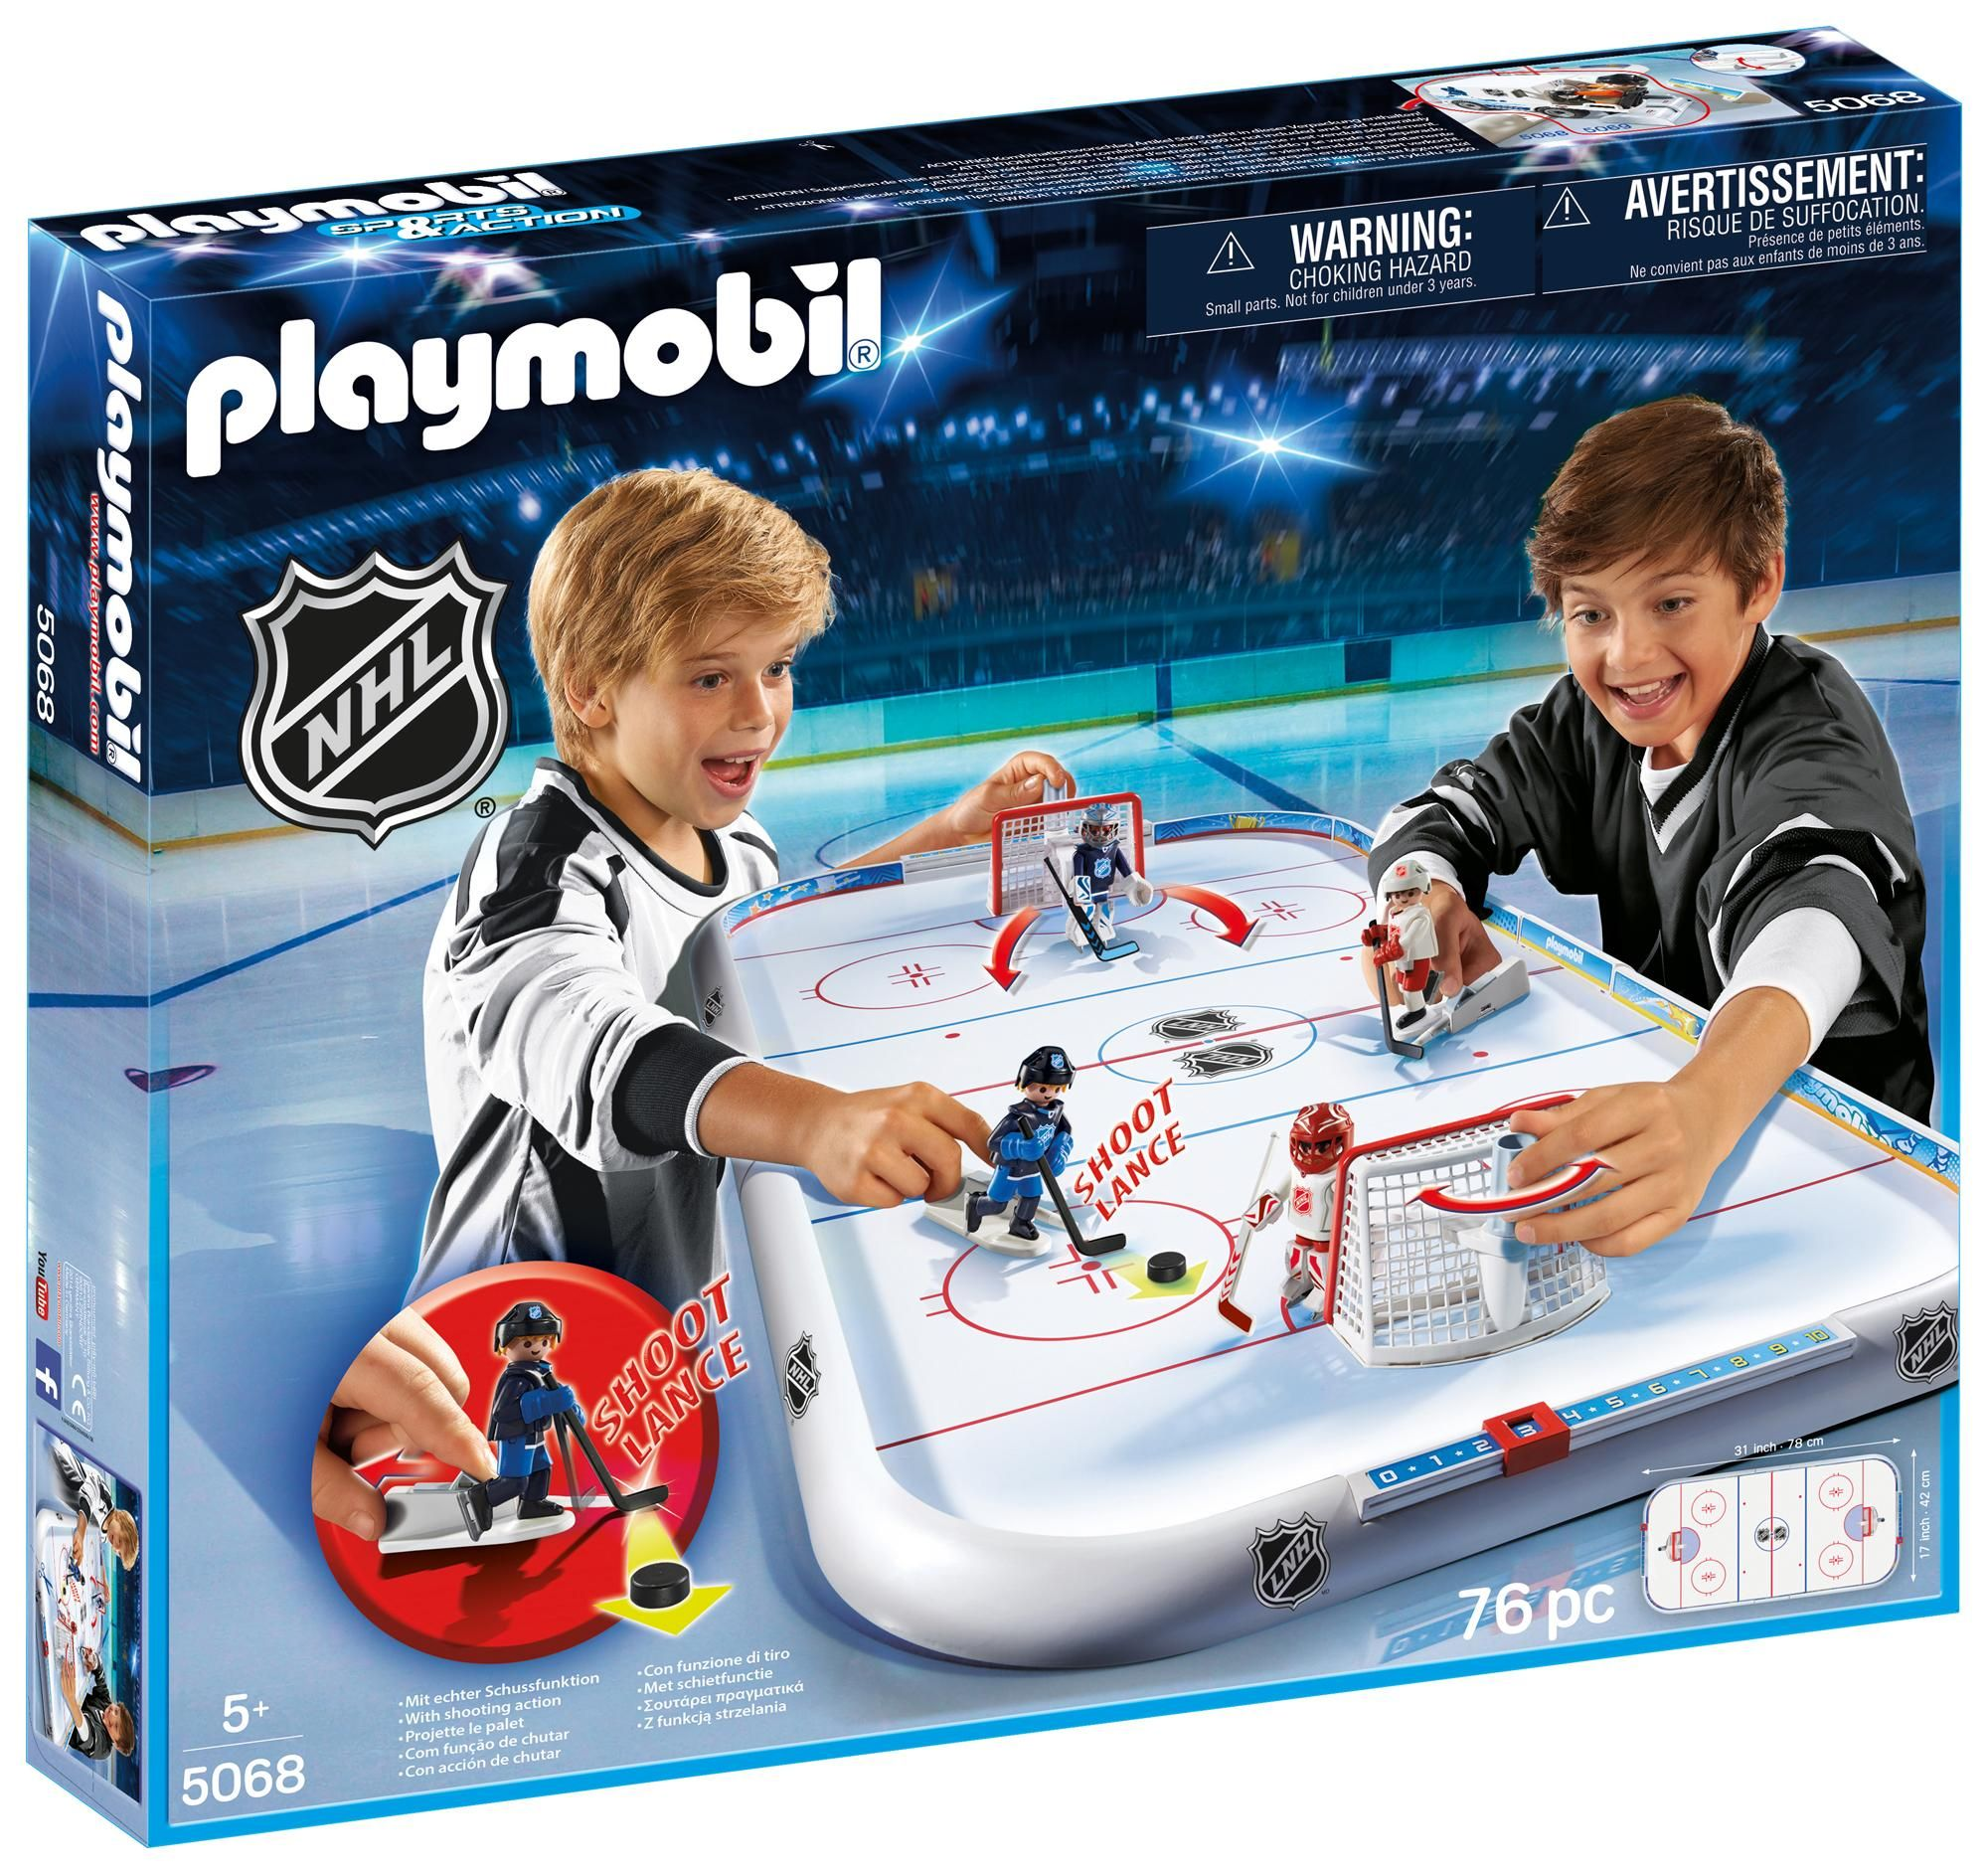 Playmobil Nhl Arena Playset Building Sets Amazon Canada My 7 Year Old Loves This Hockey Arena Nhl Nhl Hockey